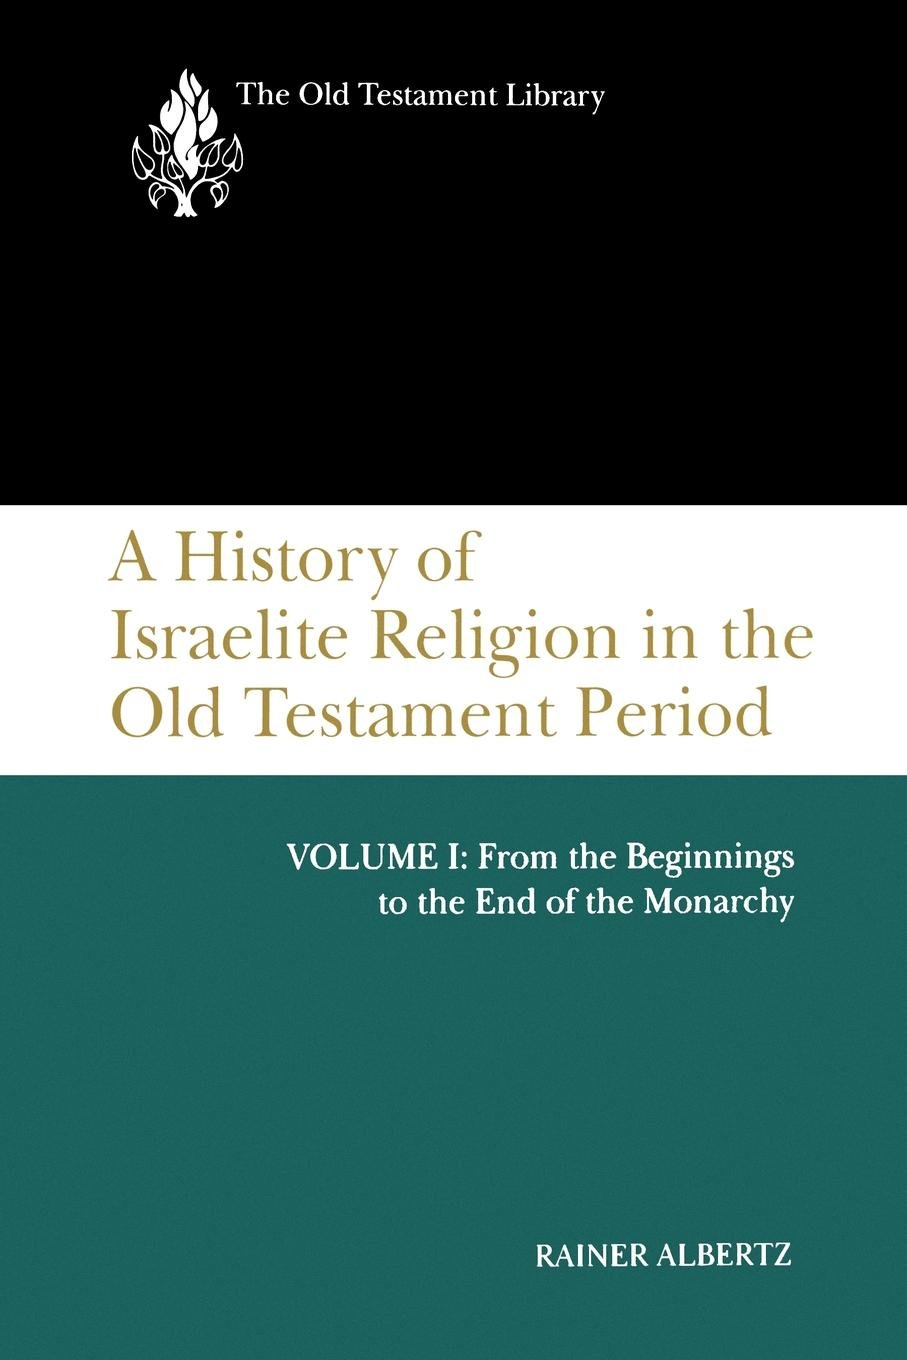 A History of Israelite Religion in the Old Testament Period: Volume I: From the Beginnings to the End of the Monarchy